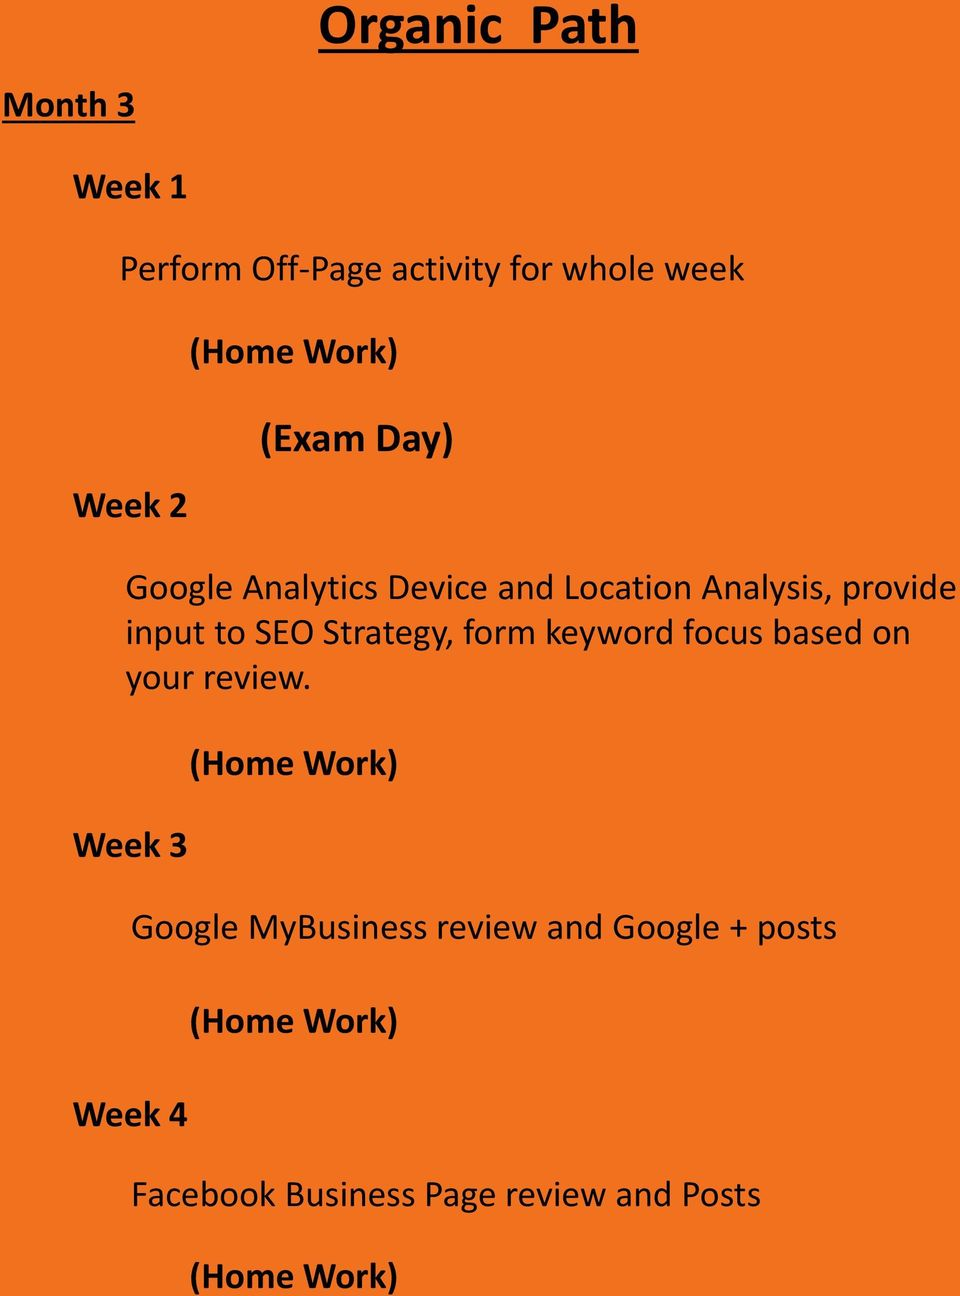 SEO Strategy, form keyword focus based on your review.